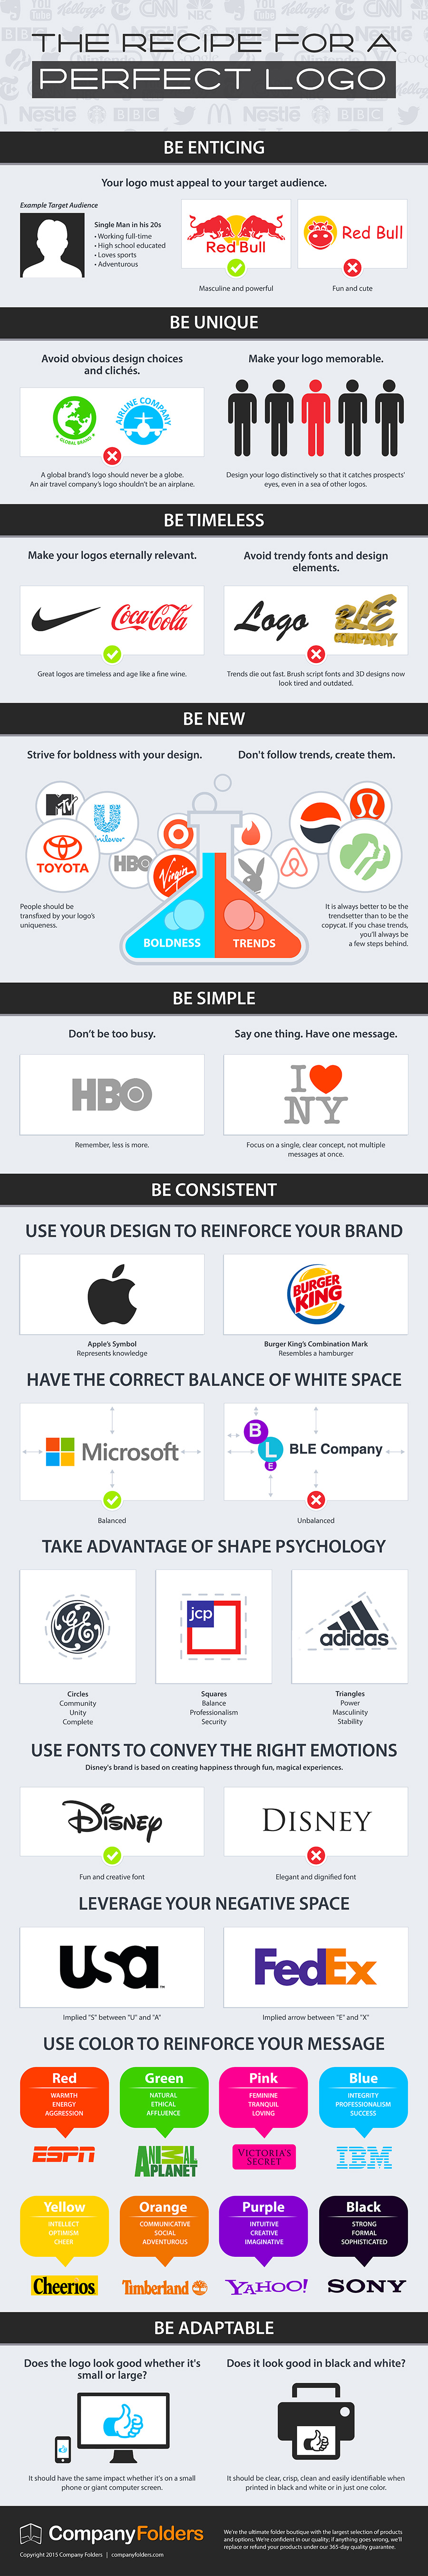 design-perfect-business-logo-infographic